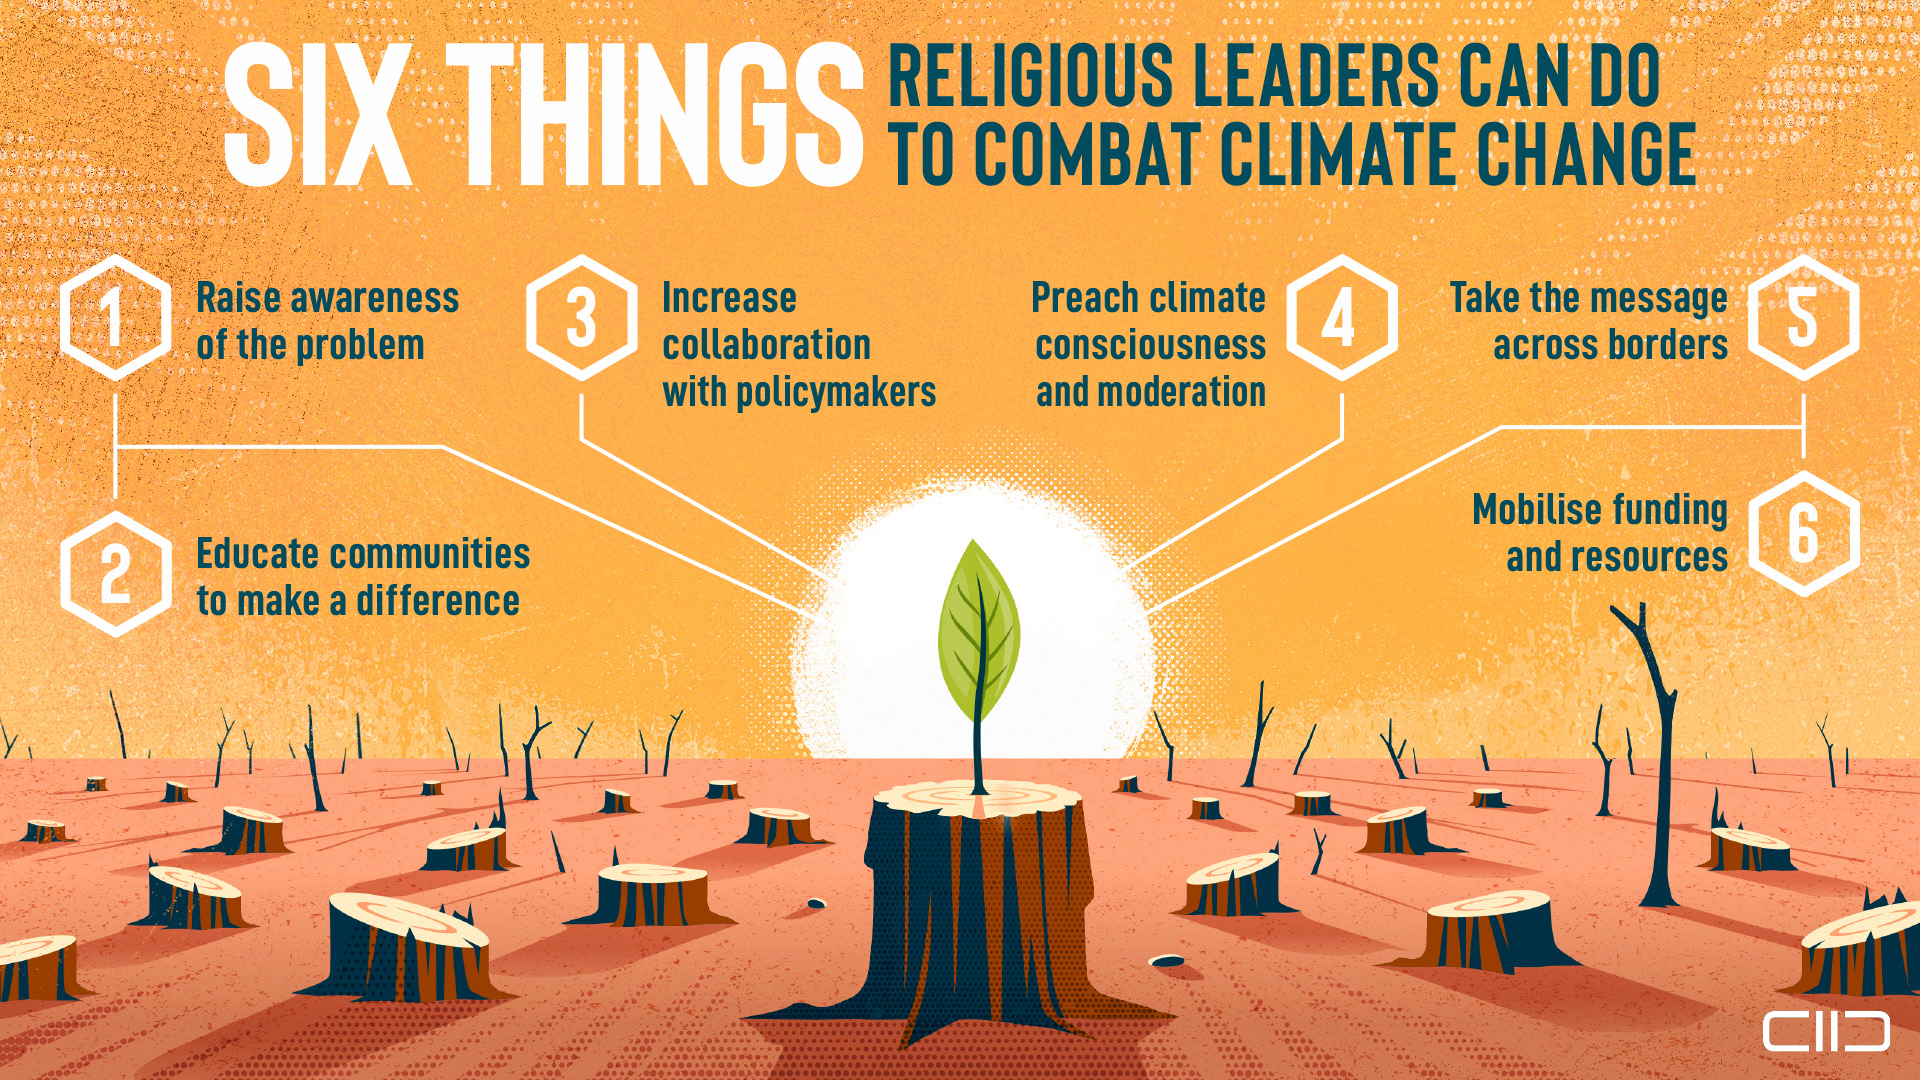 Six things religious leaders can do to combat climate change